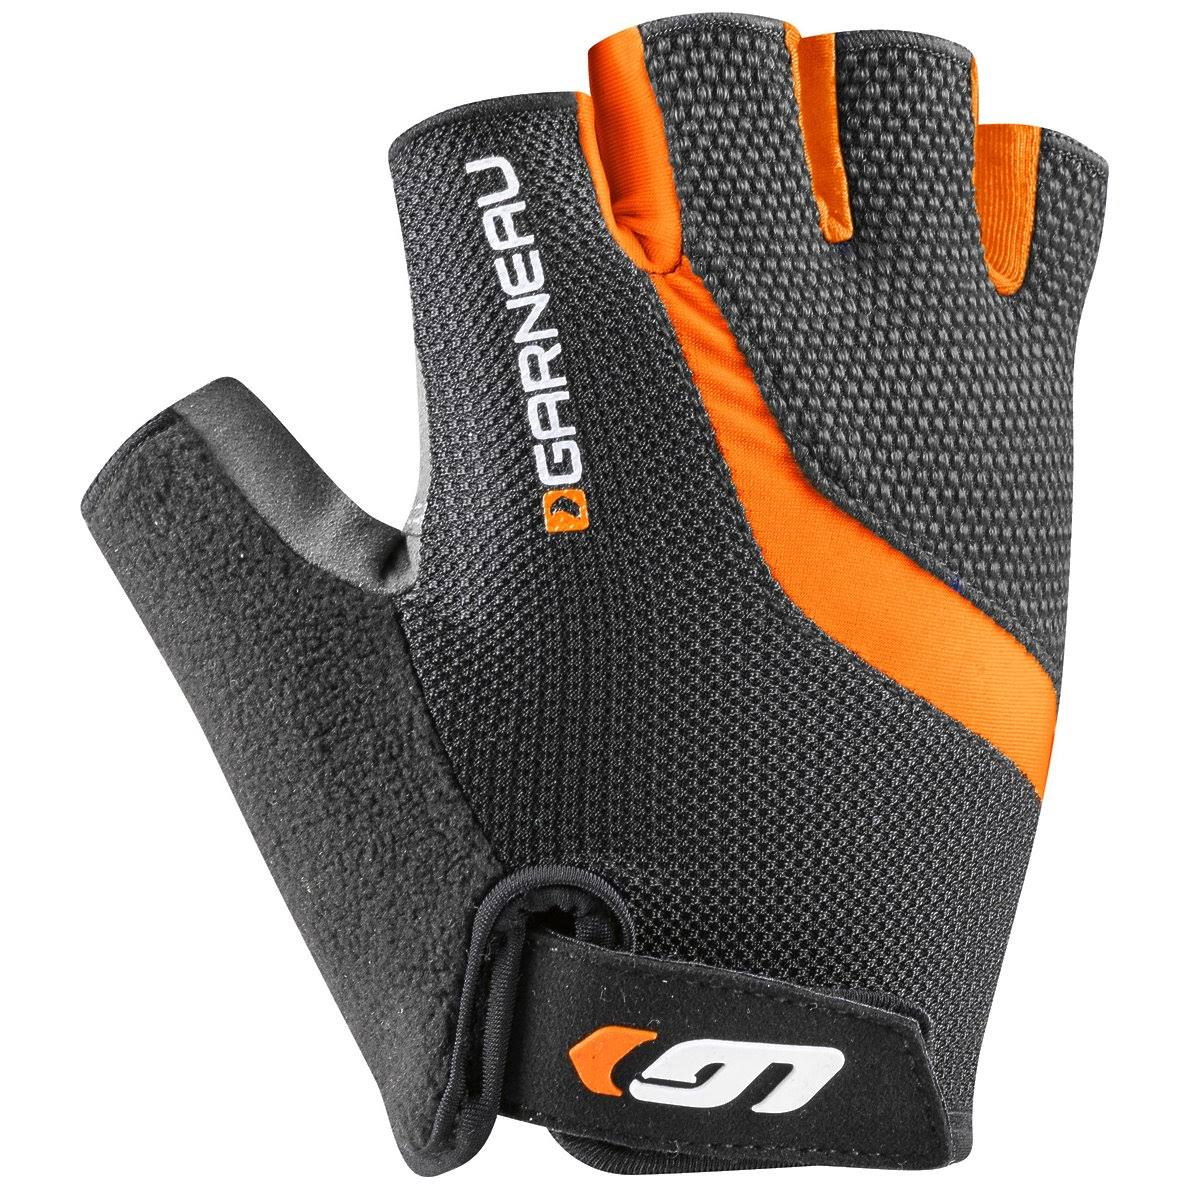 Louis Garneau 2016 Men's Biogel RX-V Cycling Gloves - 1481139 Orange Fluo - 3XL